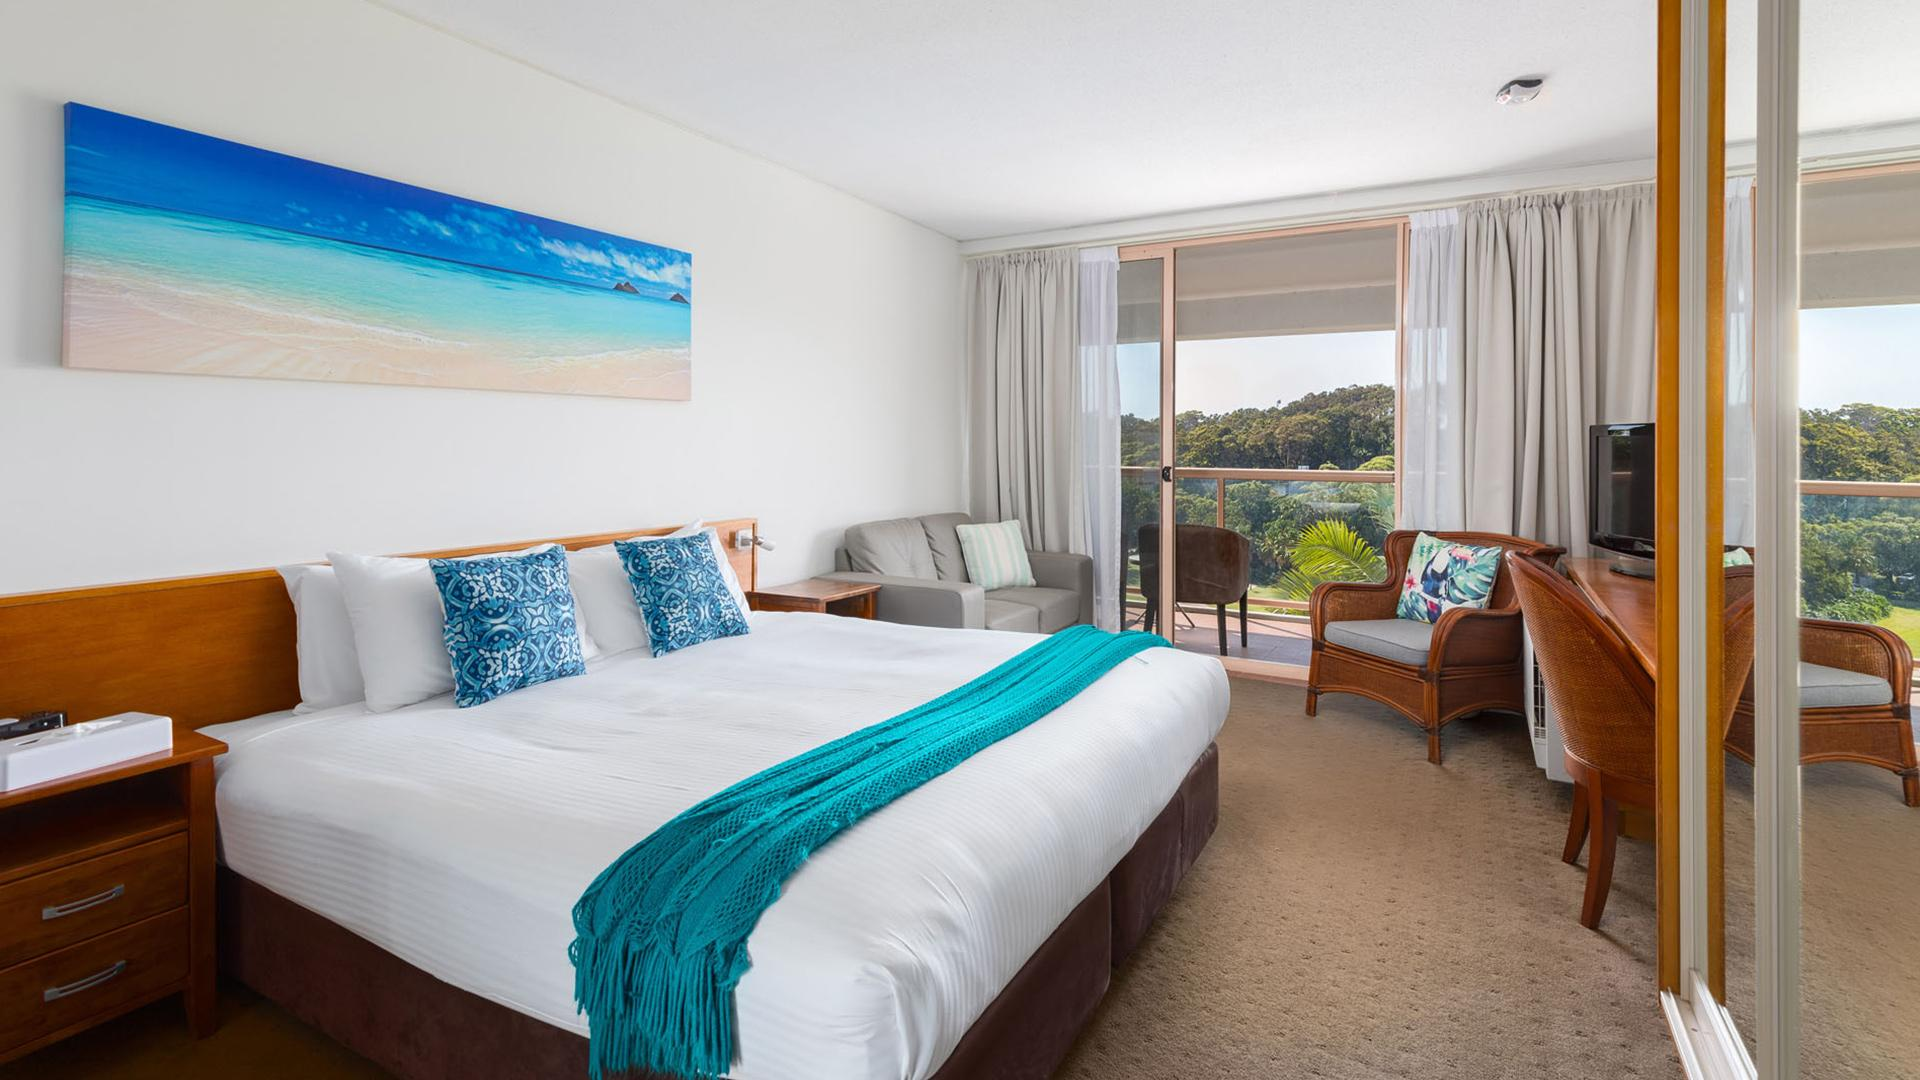 Deluxe Resort Room image 1 at Charlesworth Bay Beach Resort by Coffs Harbour City Council, New South Wales, Australia